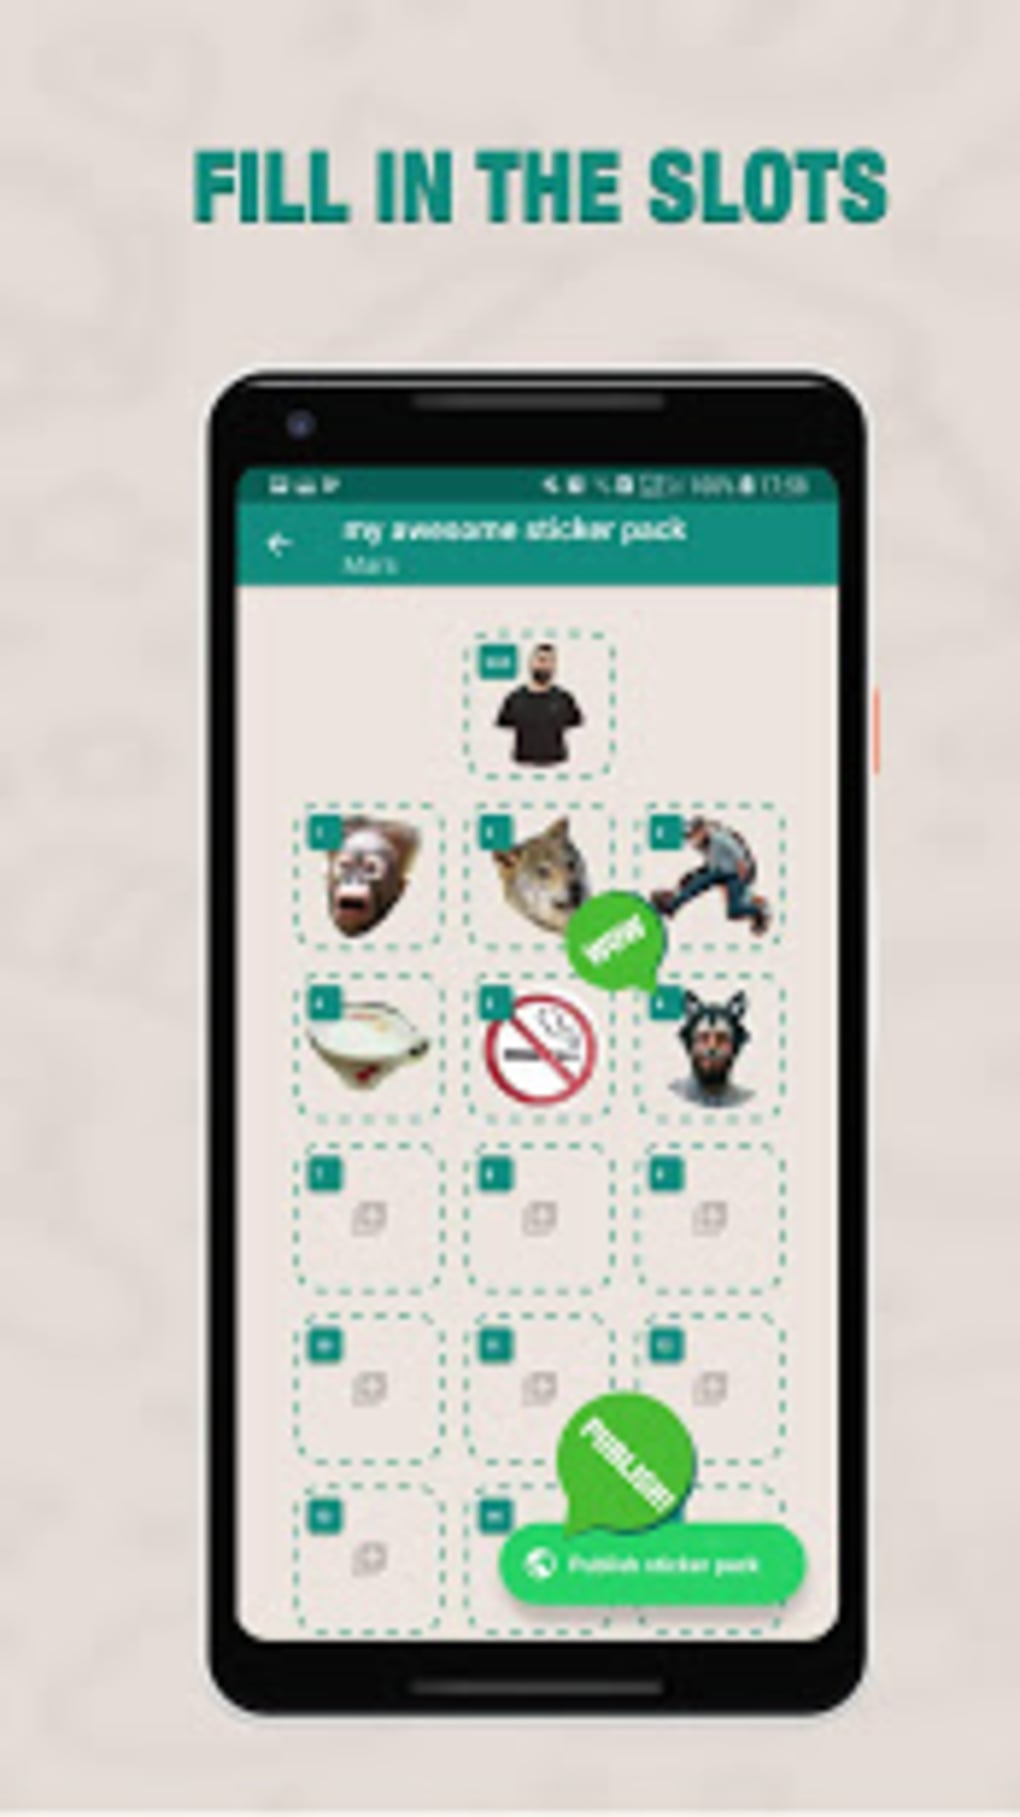 Sticker maker for WhatsApp for Android - Download